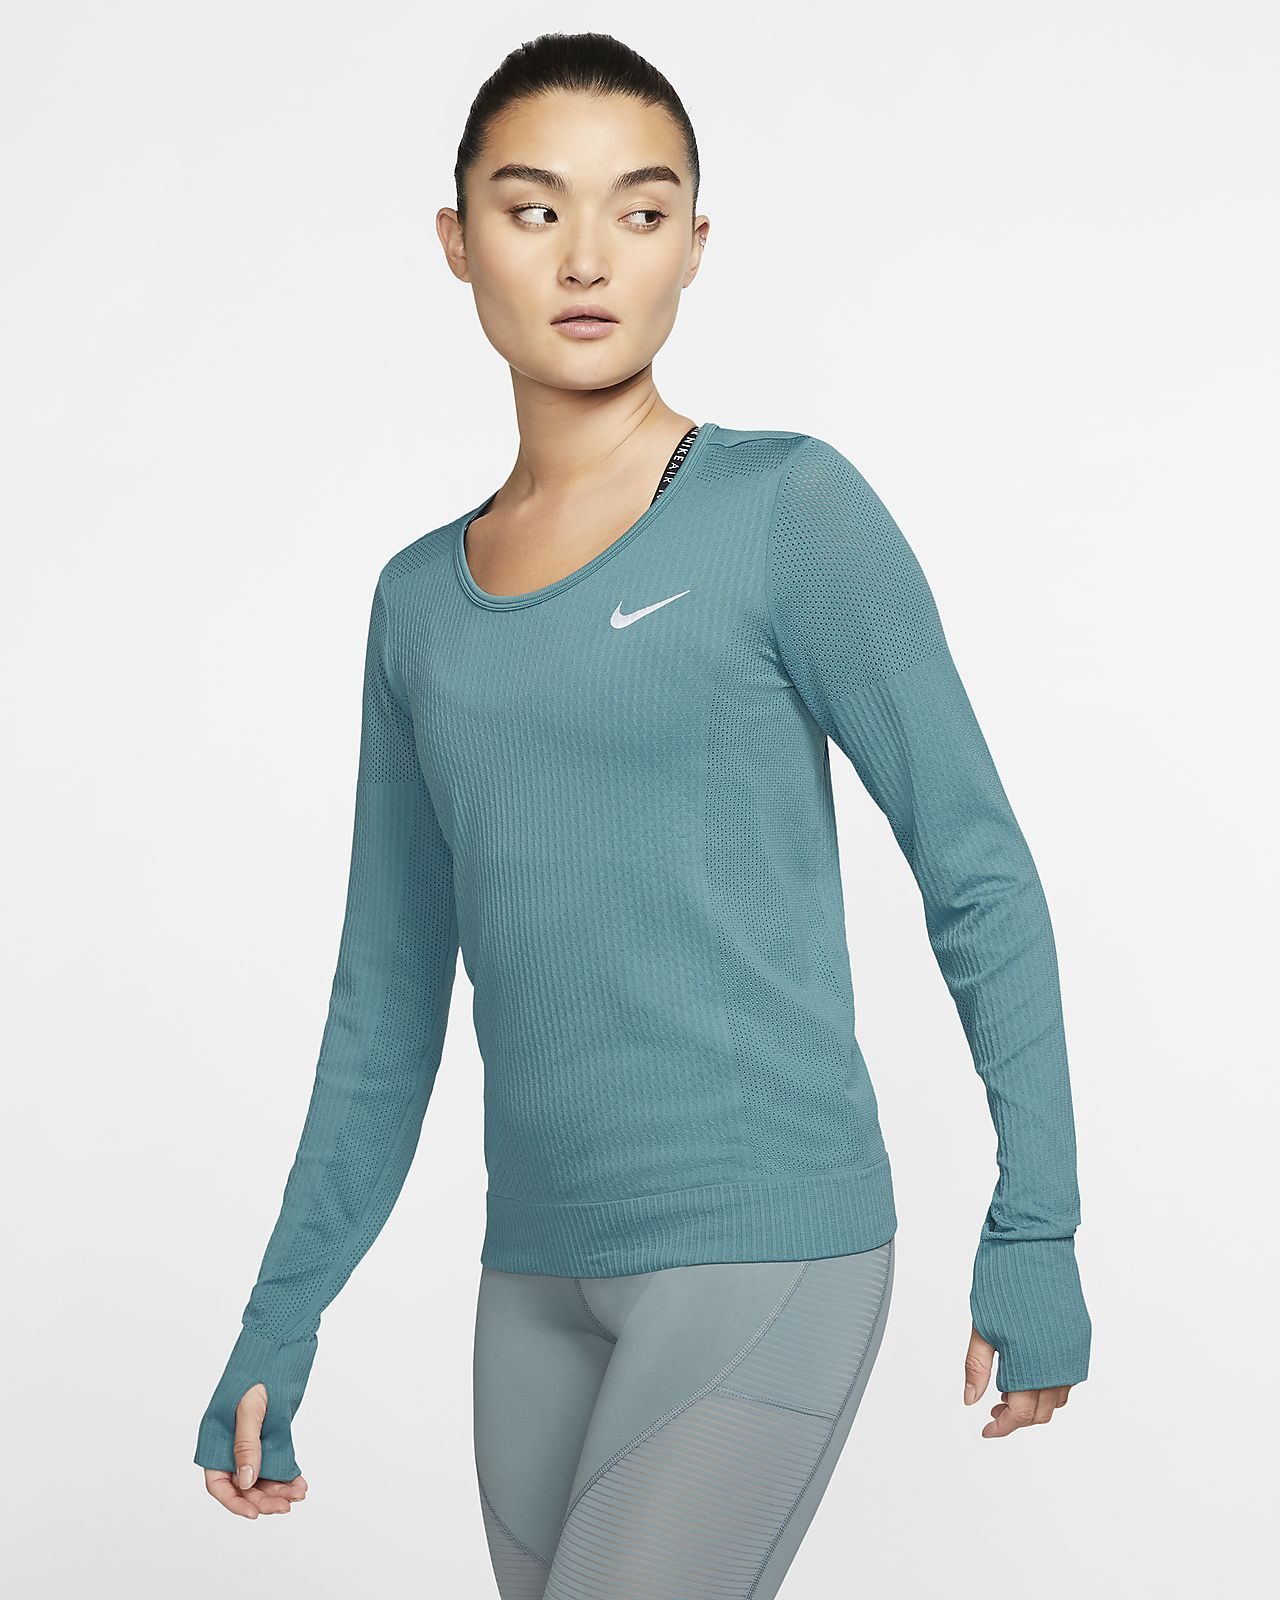 Nike Haut Running Miler Manches Longues Femme | JD Sports